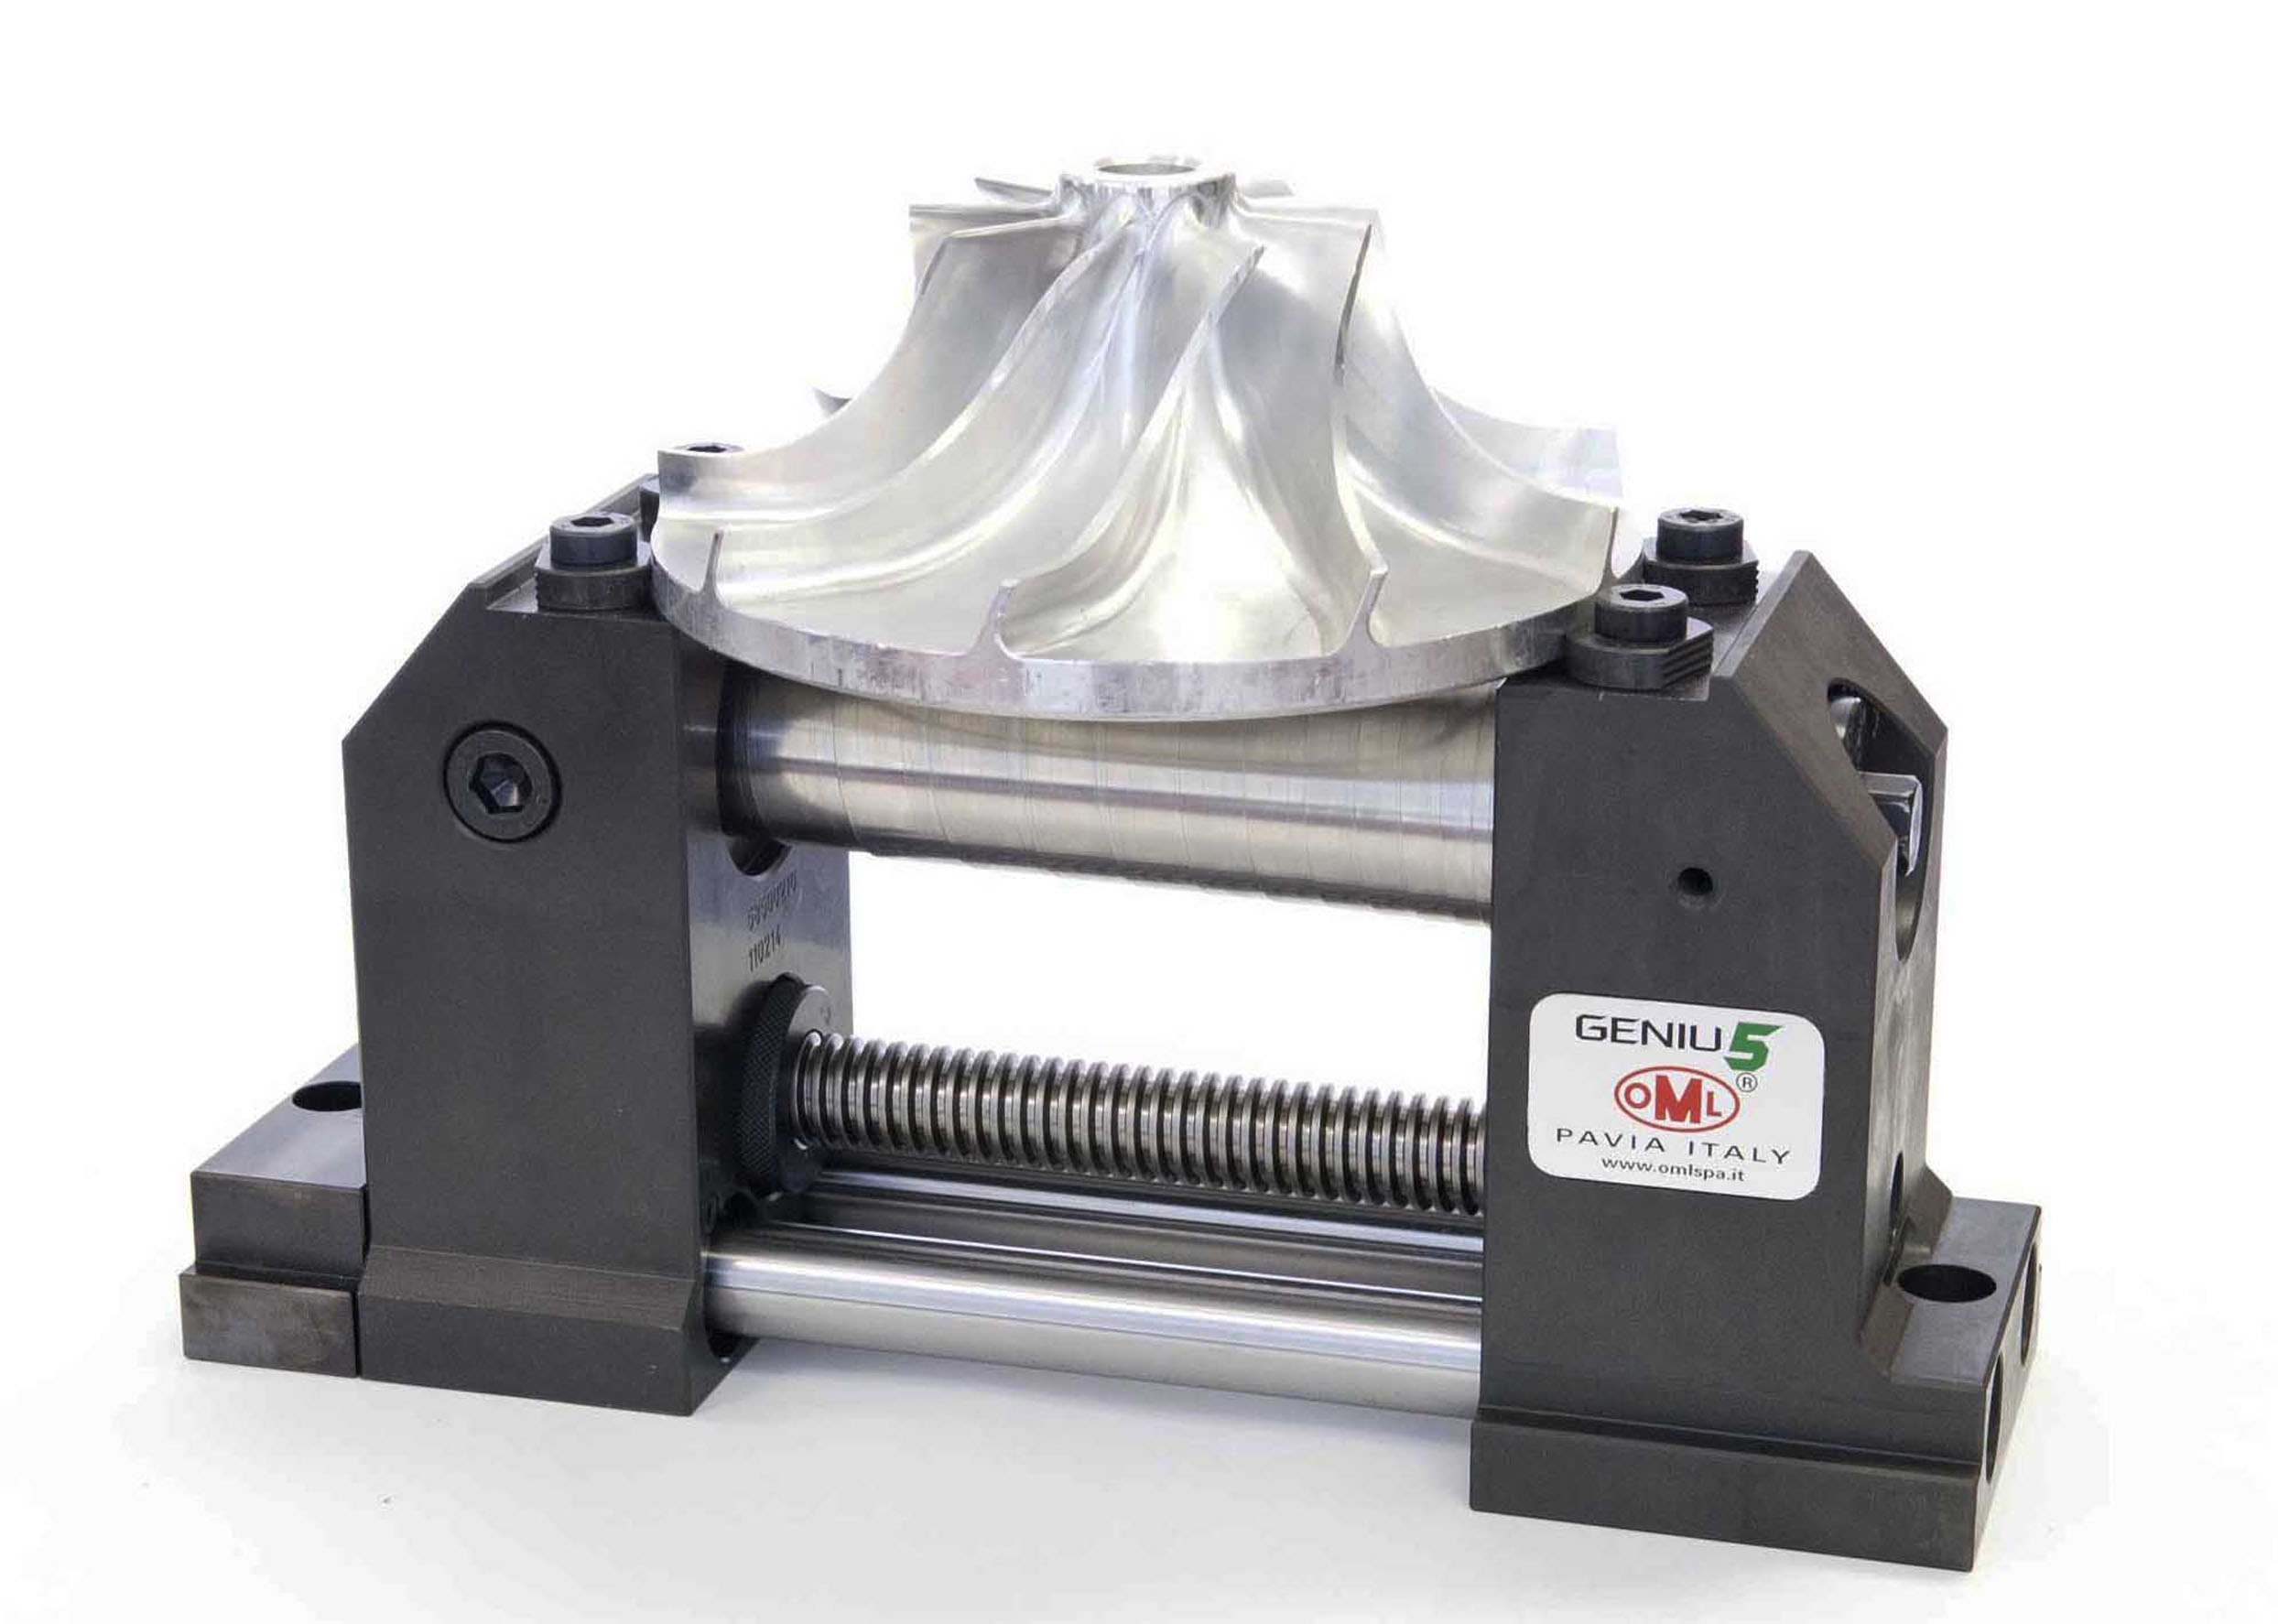 Smart Workholding for Precision 5-Axis Milling